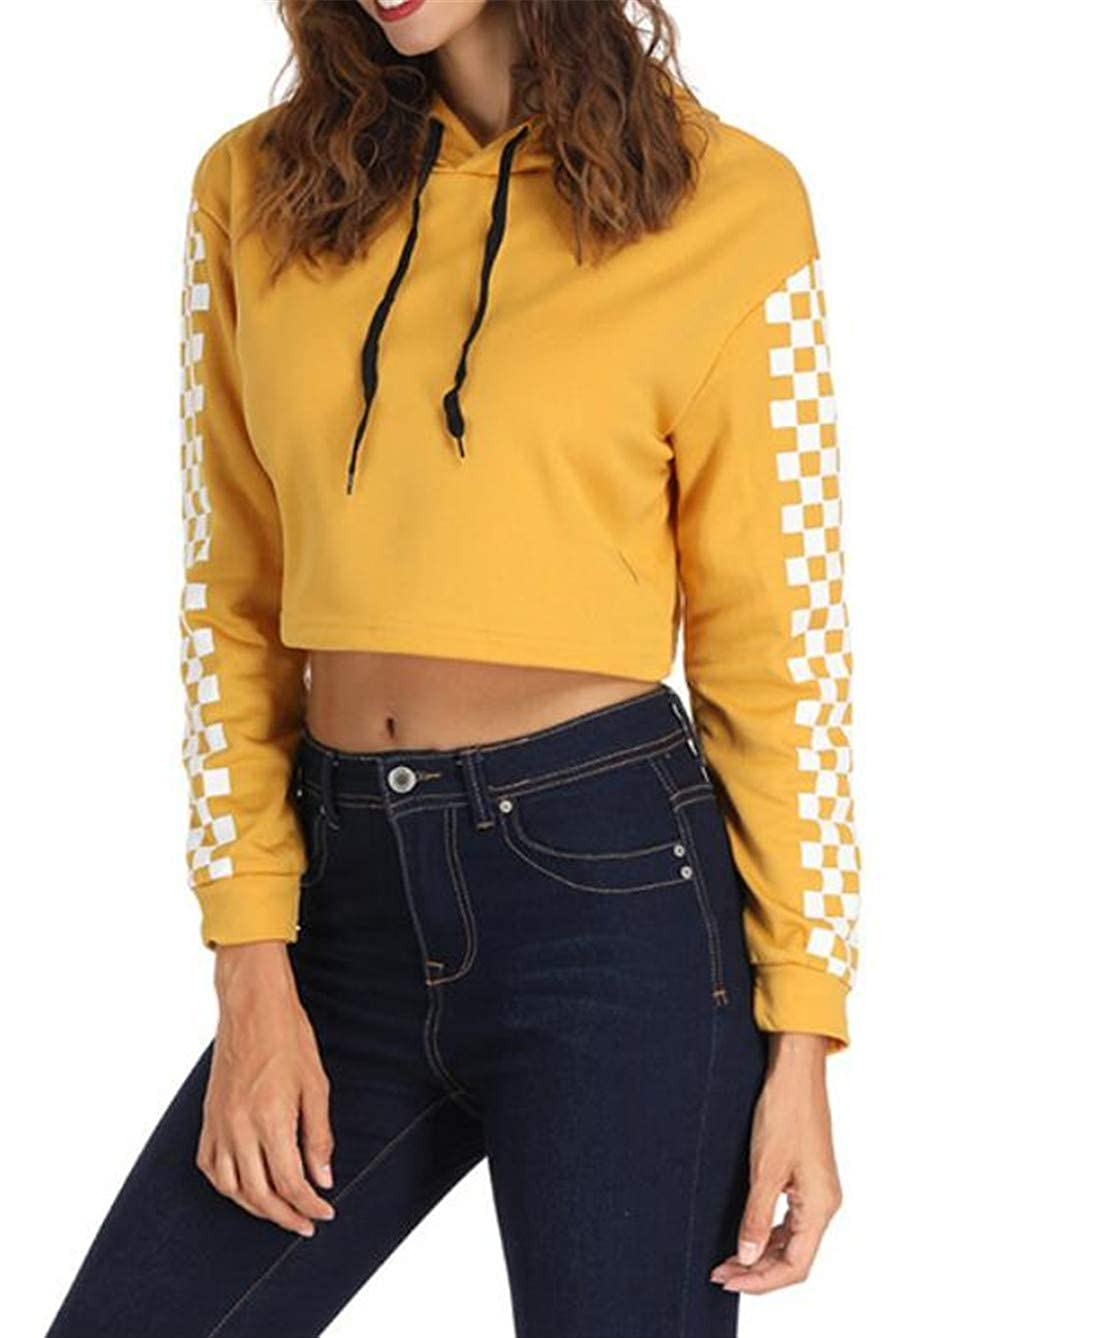 WNSY Women Autumn Checkerboard Cropped Long-Sleeve Hoodies Sweater Pullover